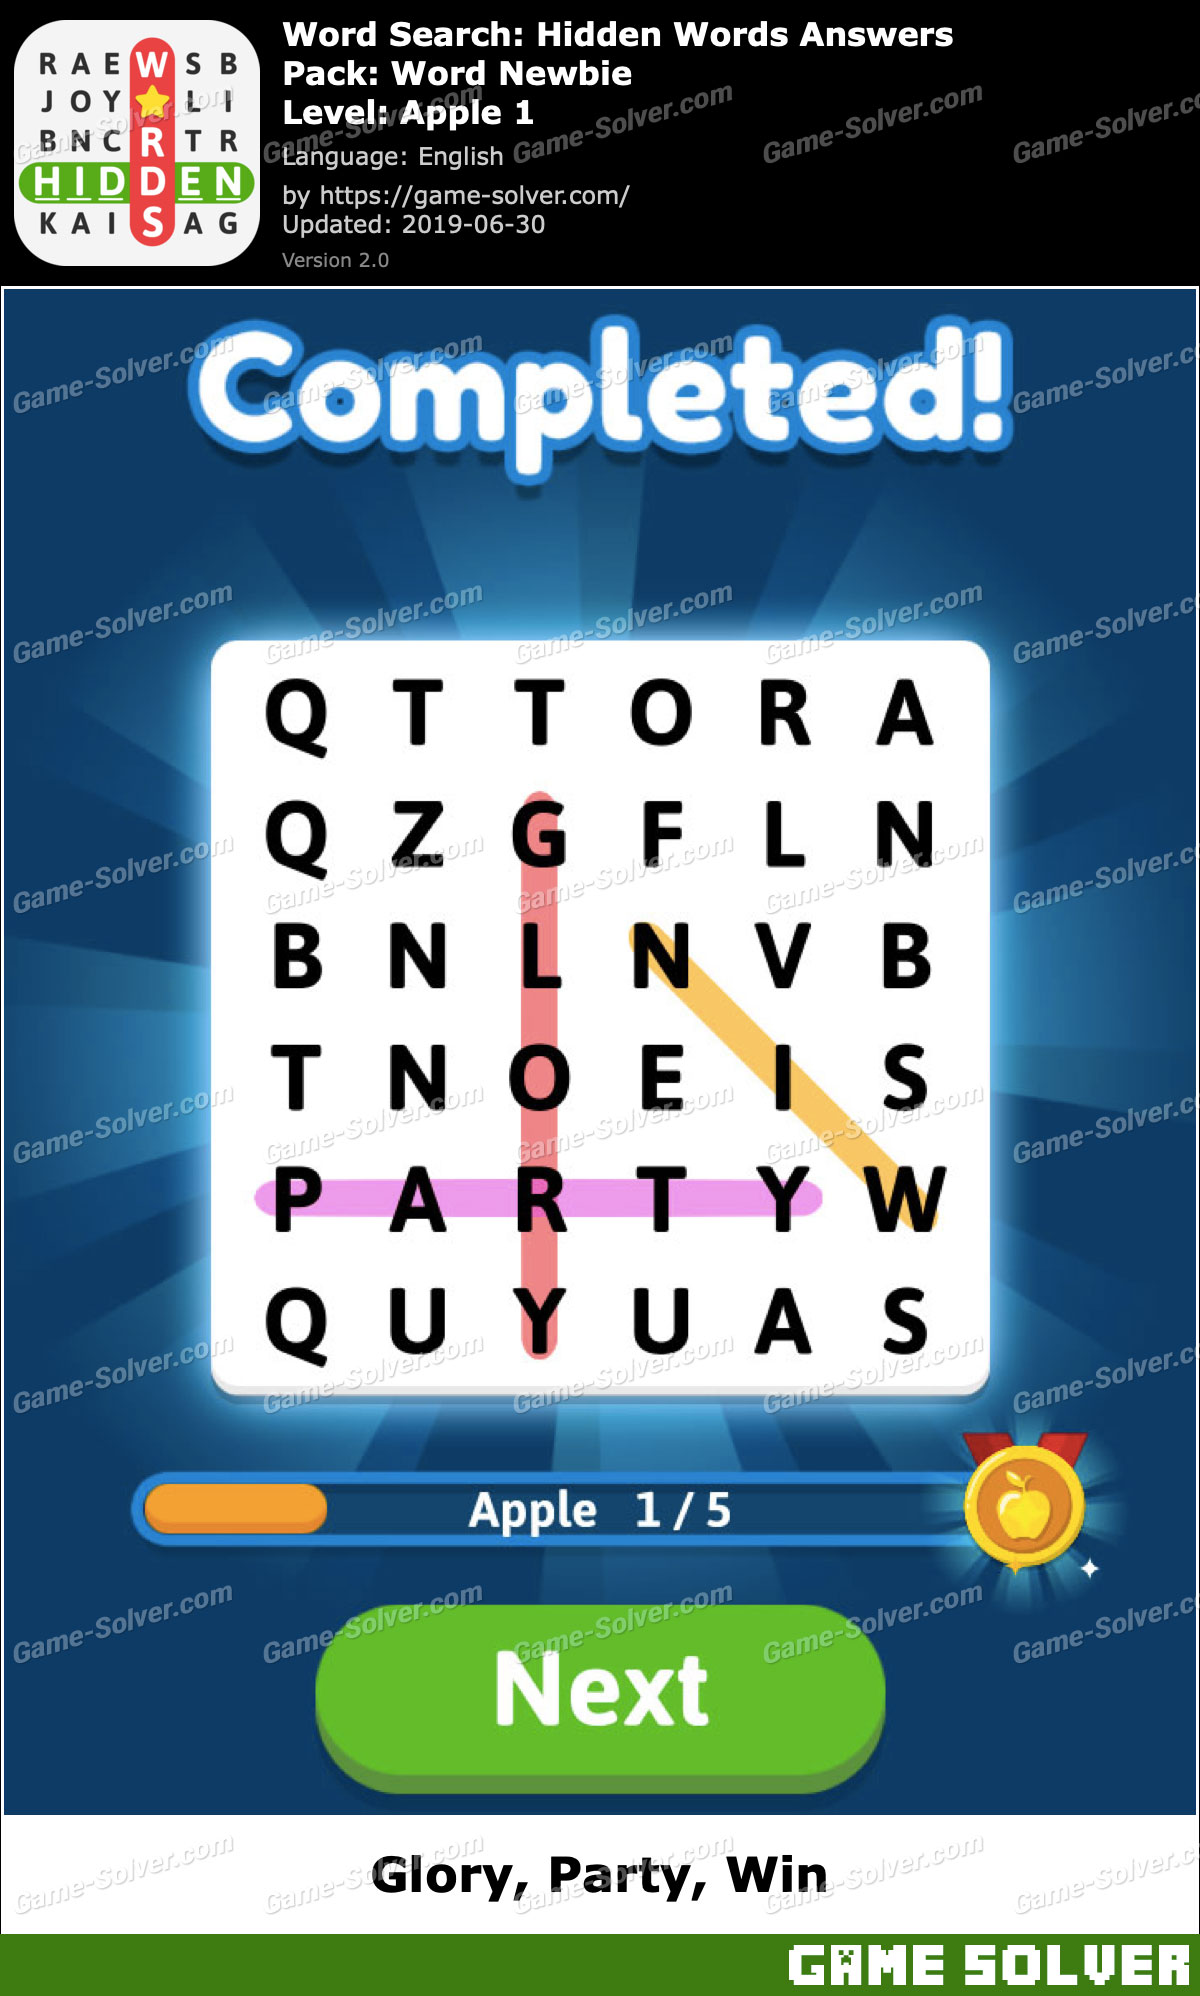 Word Search Hidden Words Word Newbie-Apple 1 Answers